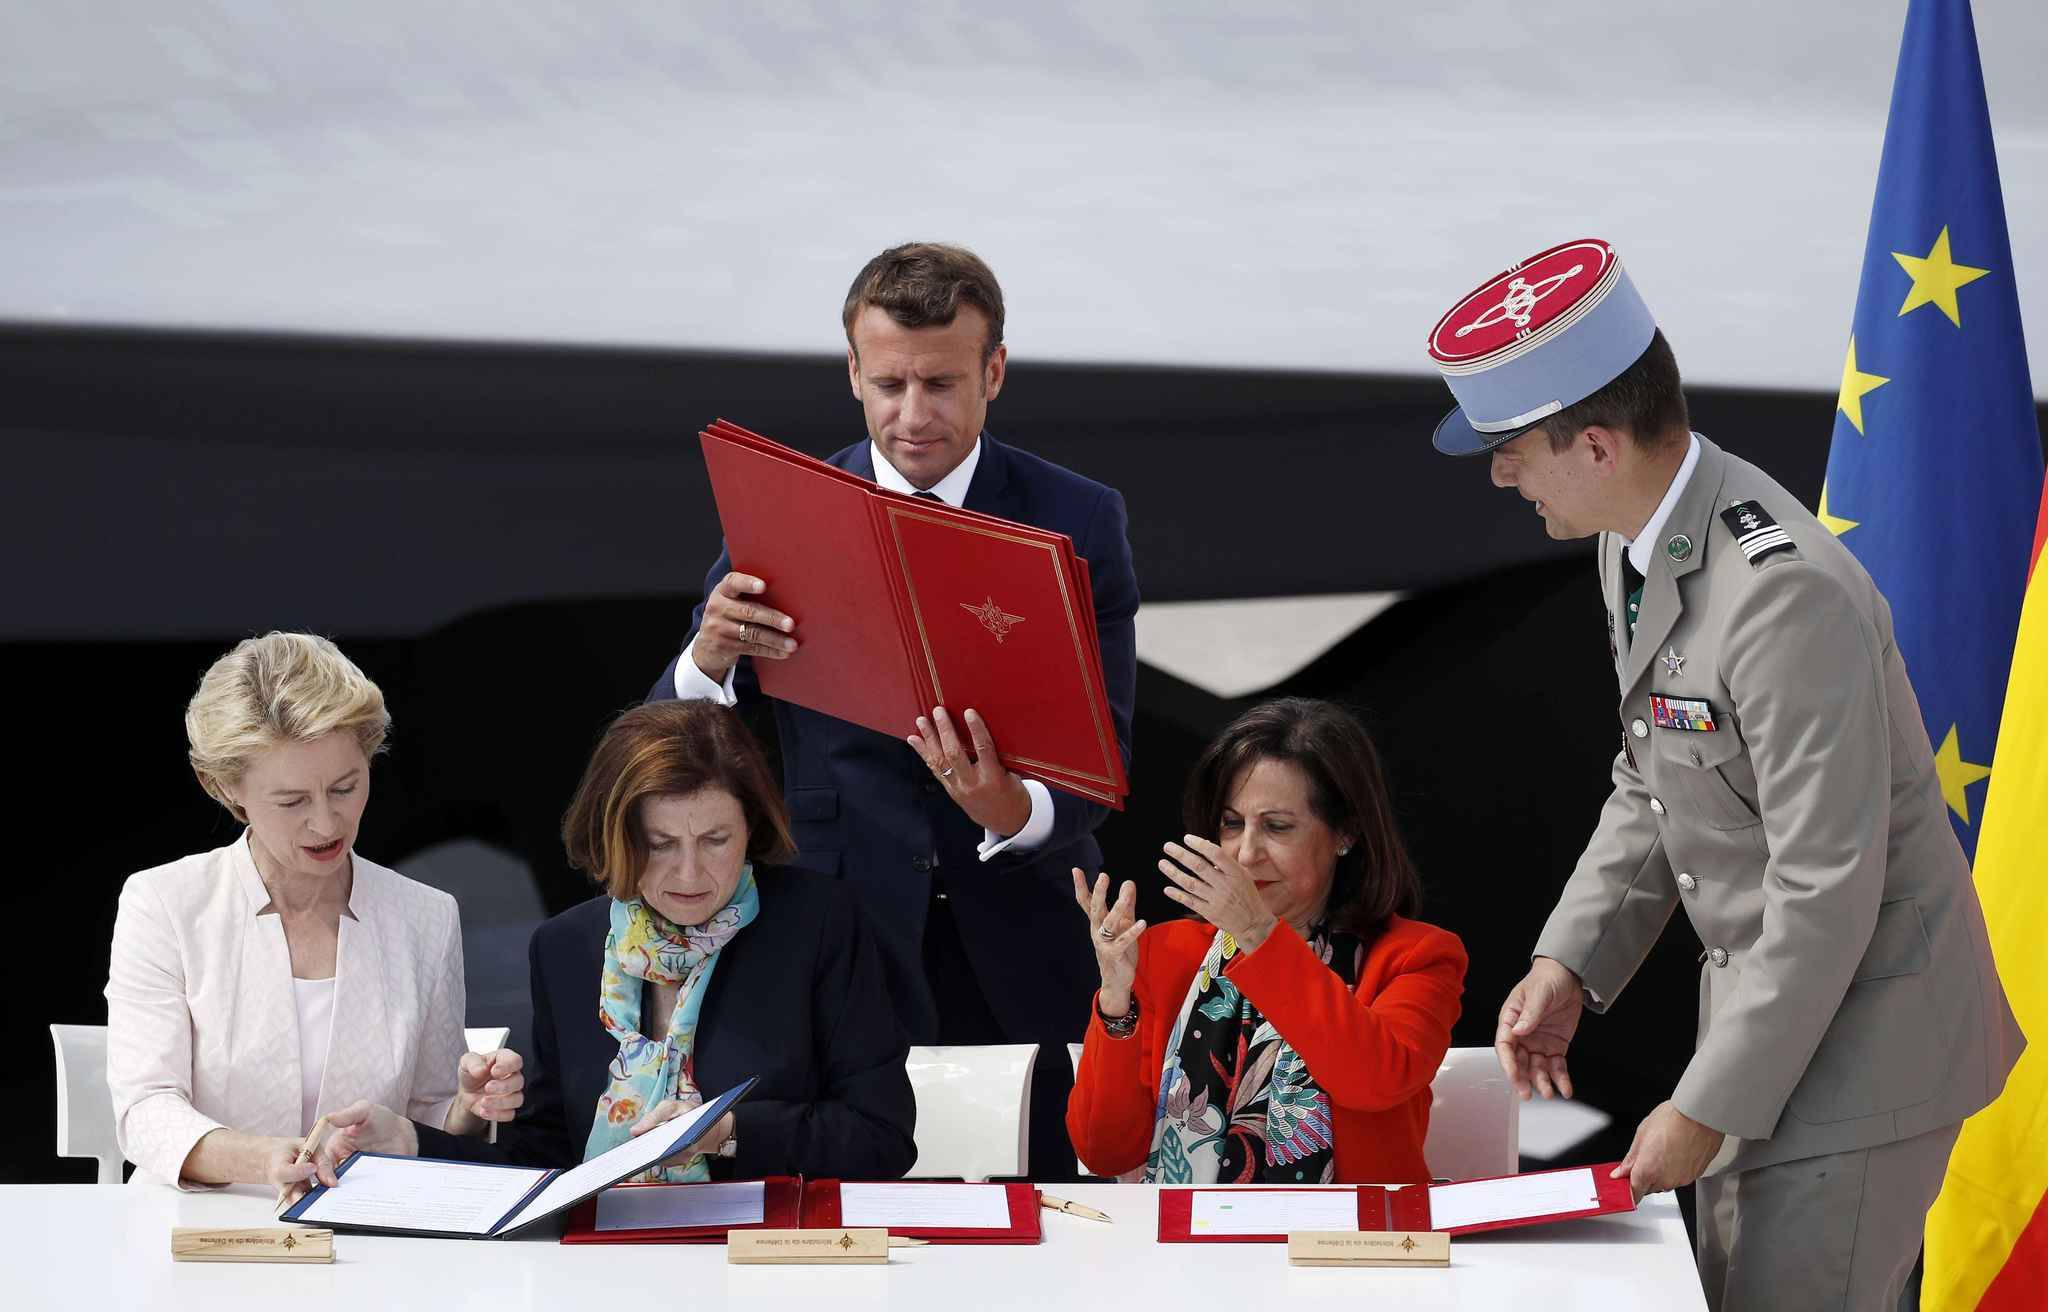 French President Emmanuel Macron, holds documents as German Defense Minister Ursula von der Leyen, left, French Defense Minister Florence Parly and Spanish Defense Minister Margarita Robles, right, attend a signature ceremony as part as the unveiling of the French-German-Spanish new generation fighter model during Le Bourget Airport near Paris, France, Monday June 17, 2019.